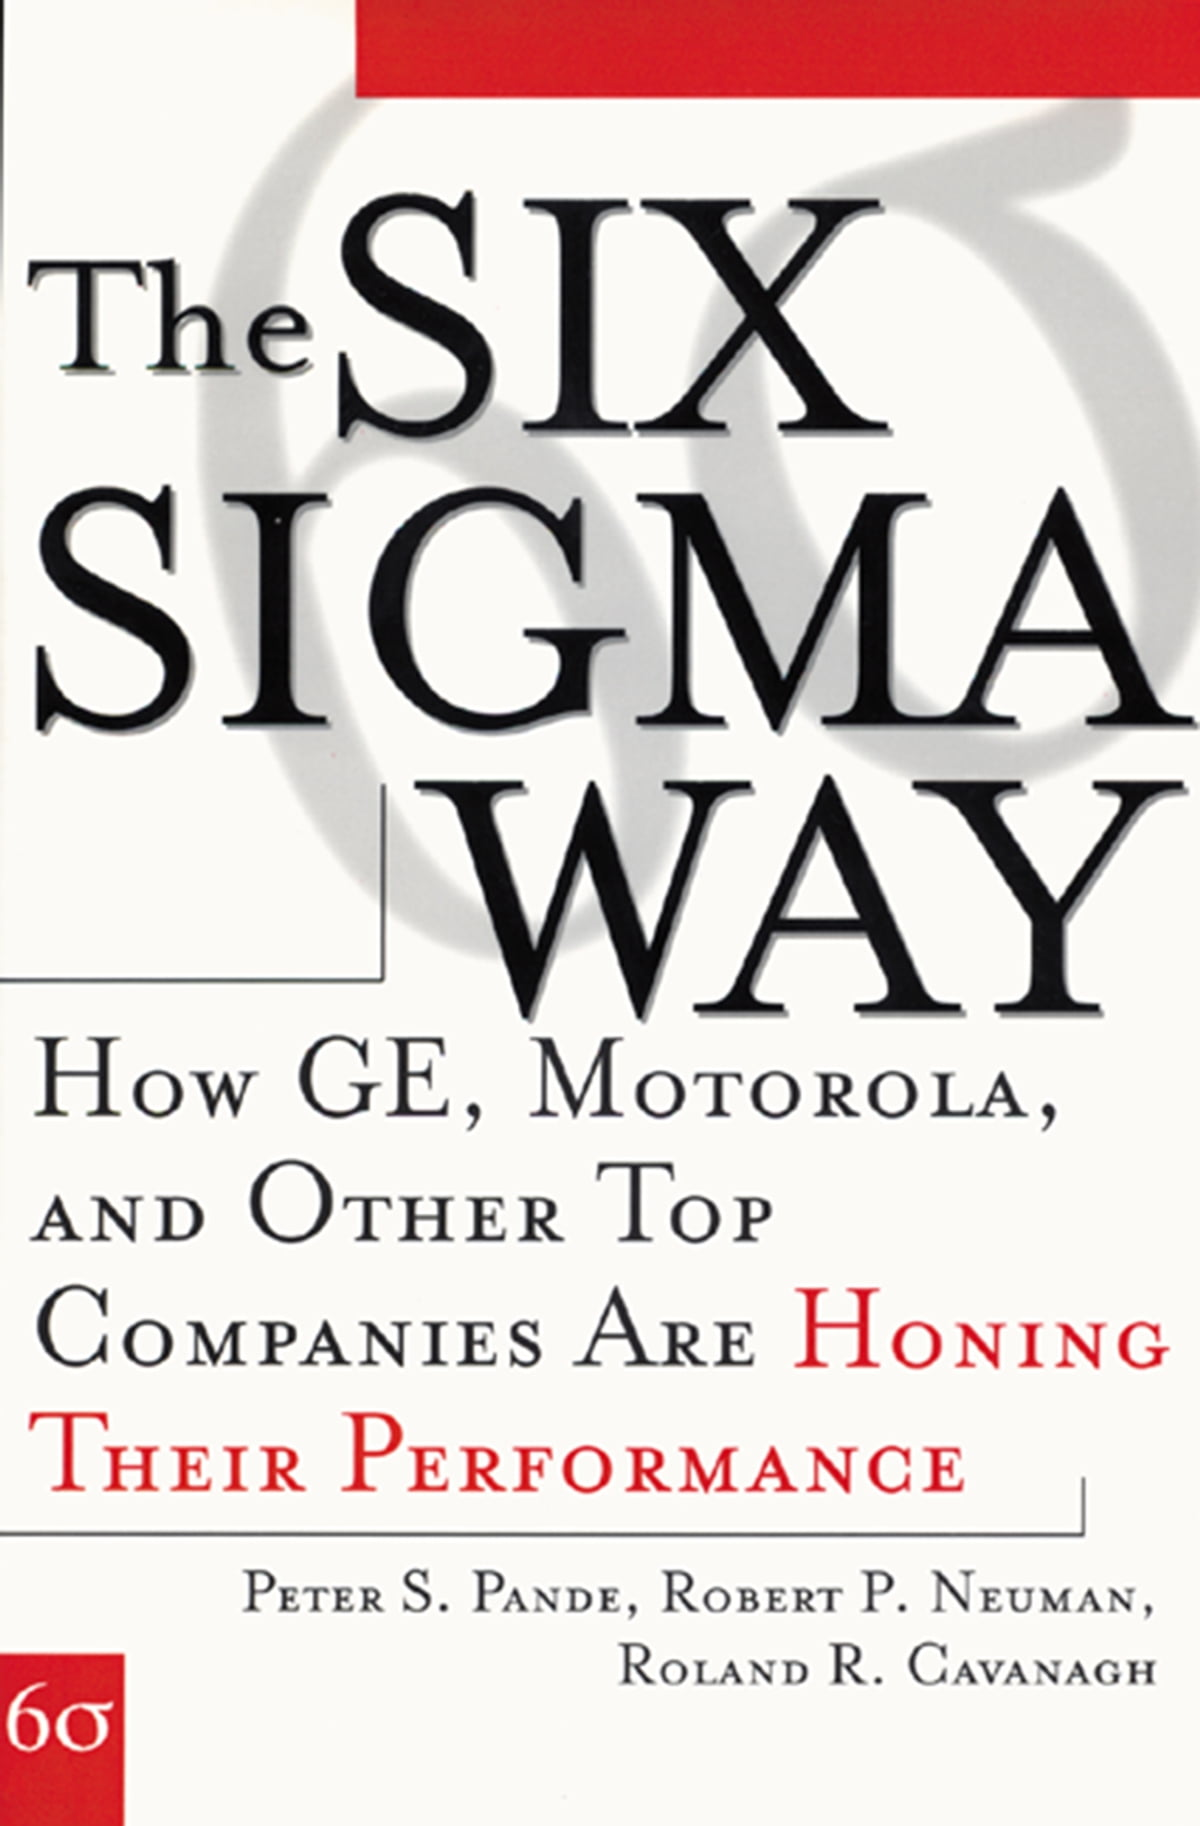 The six sigma way how ge motorola and other top companies are the six sigma way how ge motorola and other top companies are honing their performance ebook by roland r cavanagh 9780071376679 rakuten kobo 1betcityfo Gallery